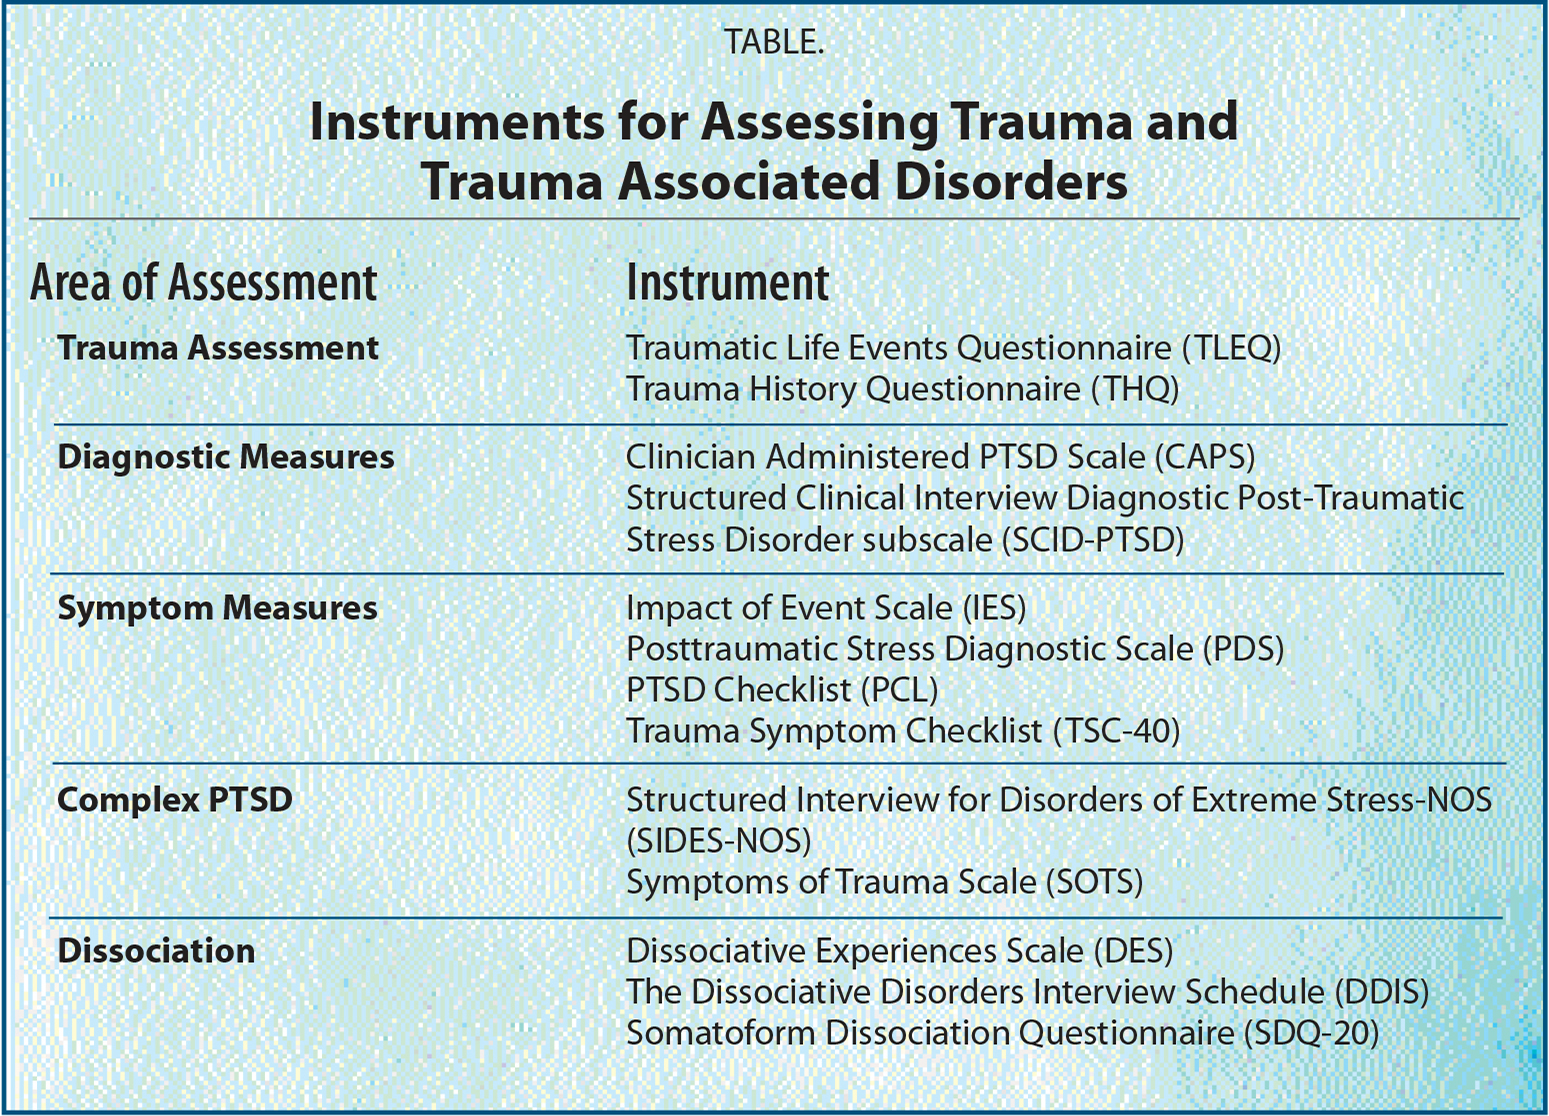 Instruments for Assessing Trauma and Trauma Associated Disorders